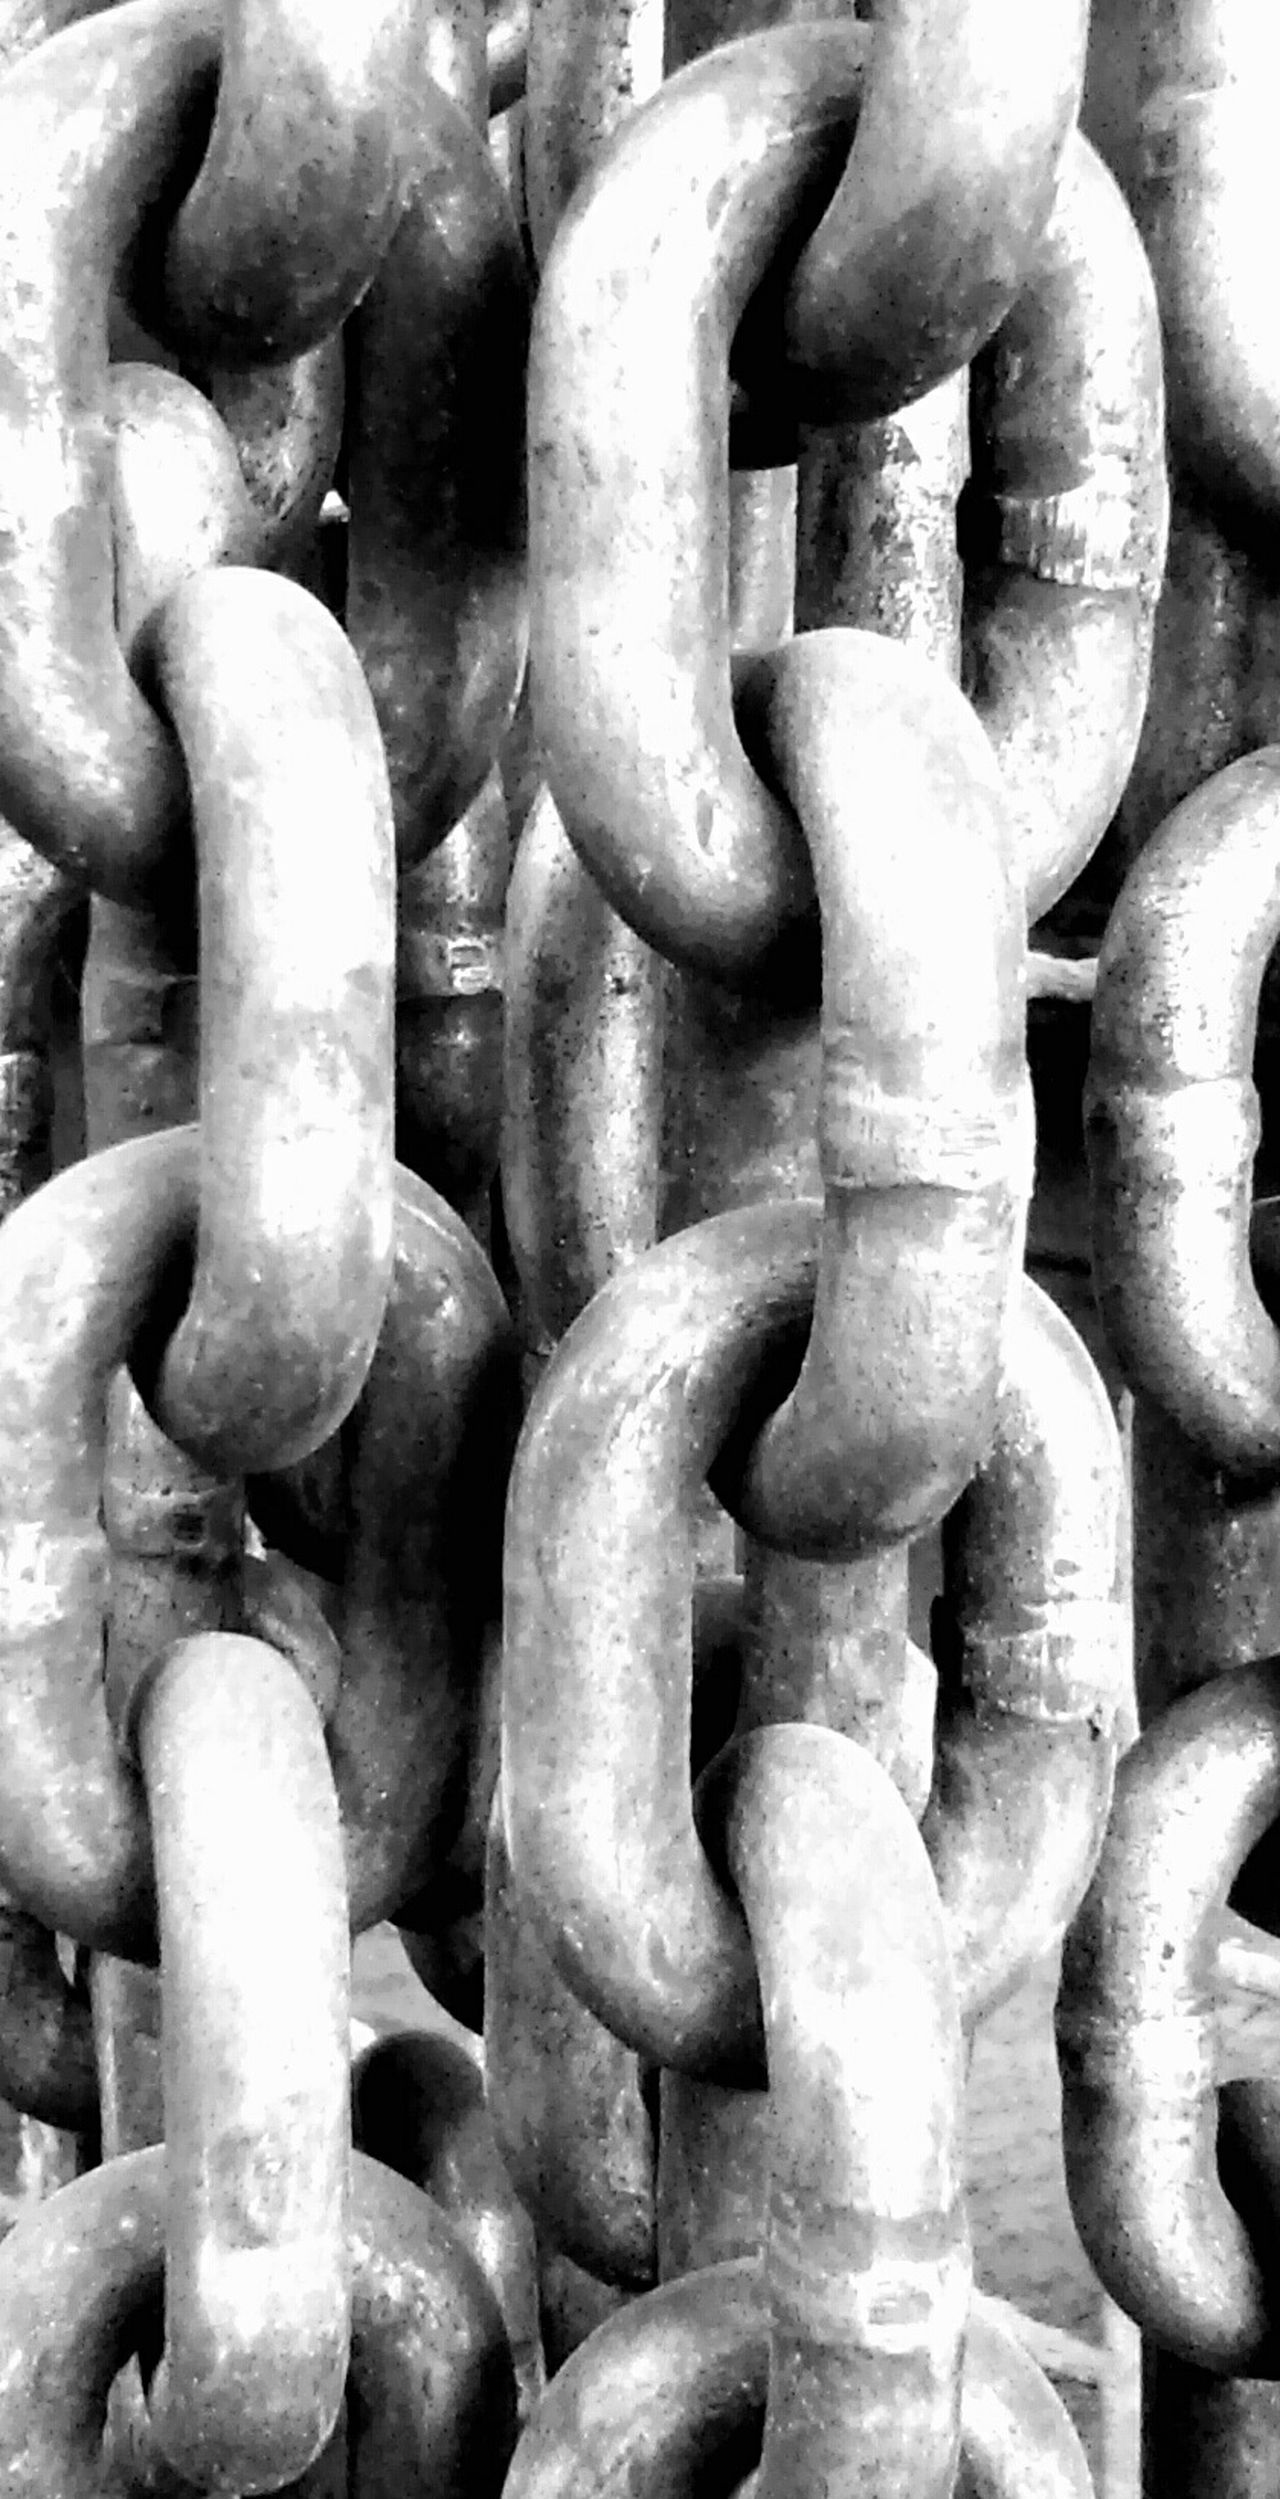 Chained Chain Blackandwhite Black And White Black Dark Factory Hanging Out Hi! Link LinkedIn Linked Grunge